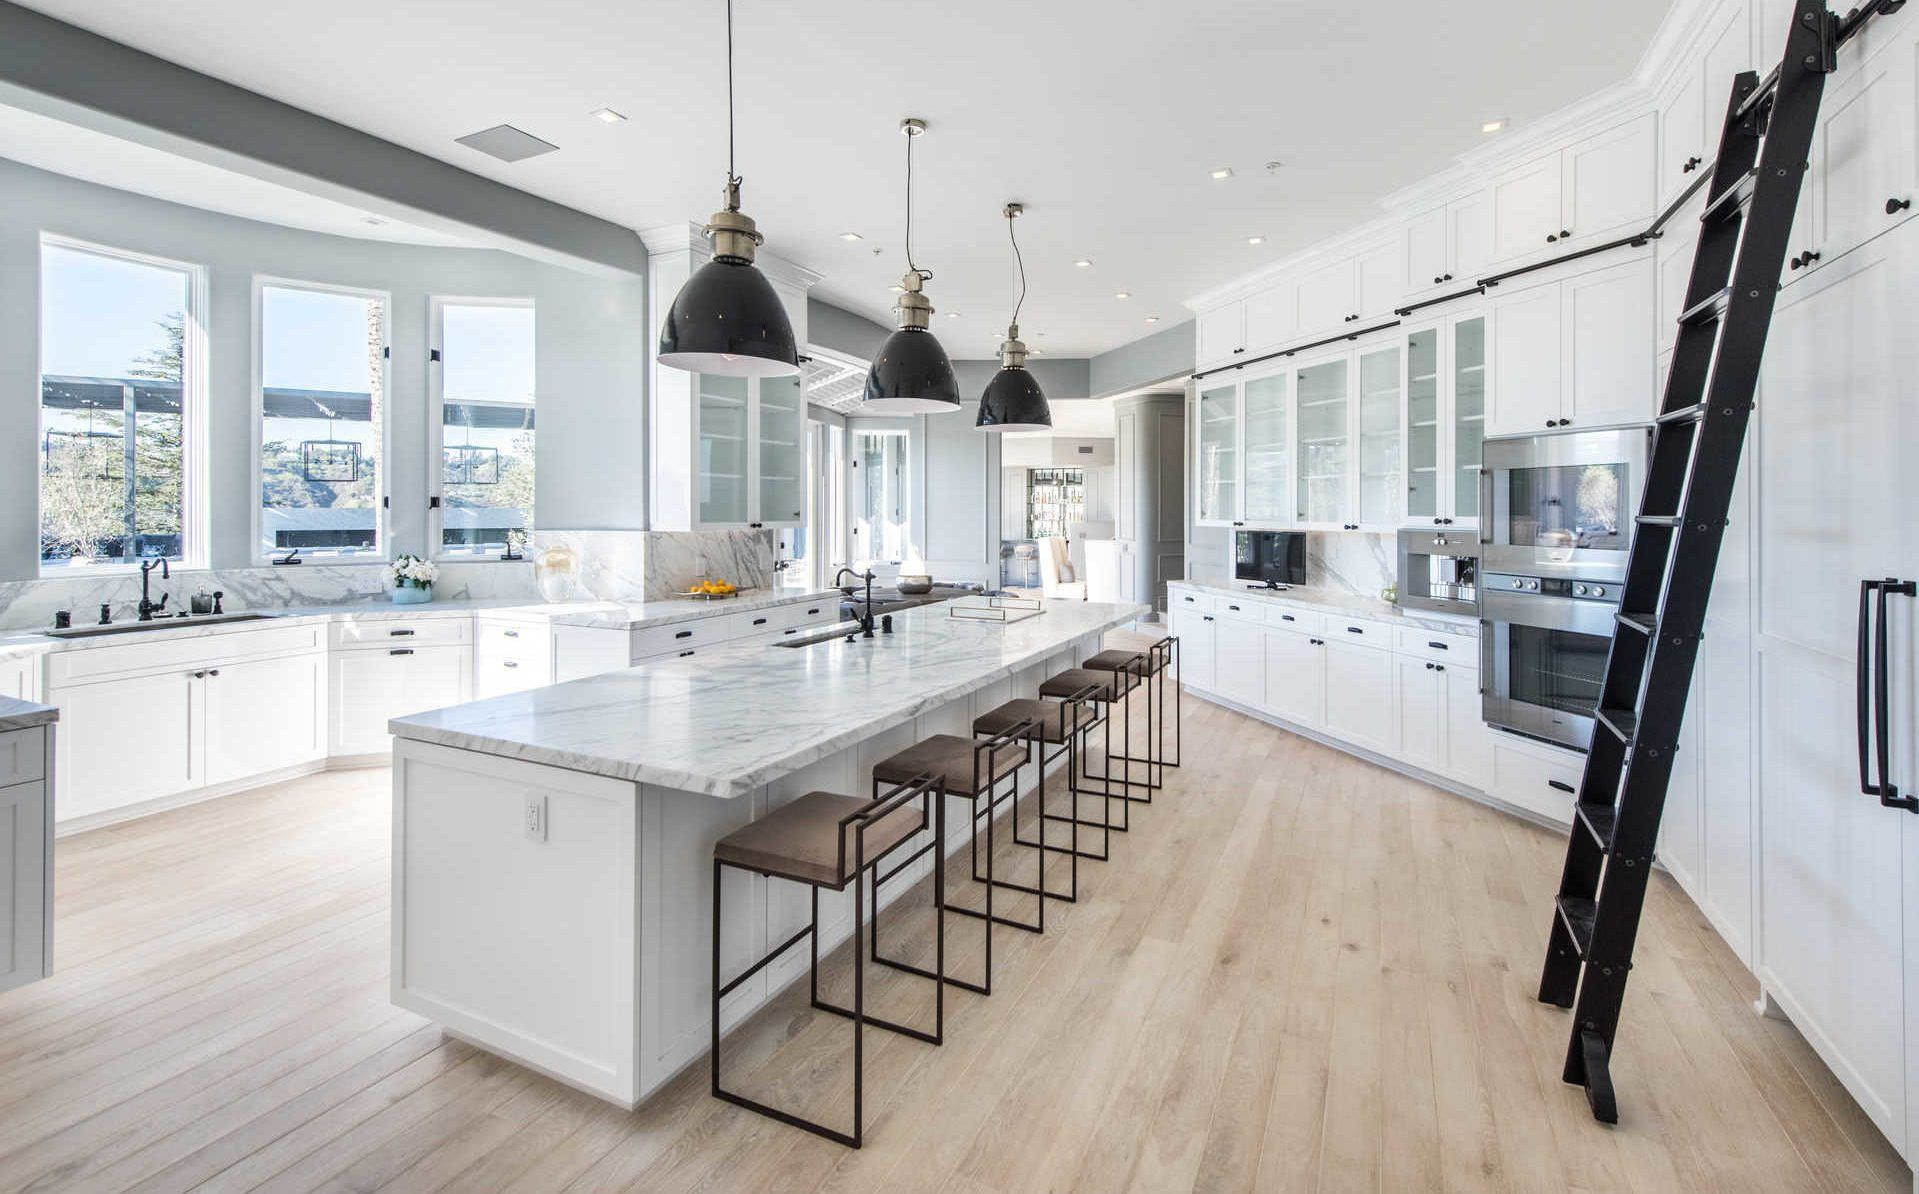 9719 Heather Rd, Beverly Hills, CA 90210 | Kylie jenner house bh ...